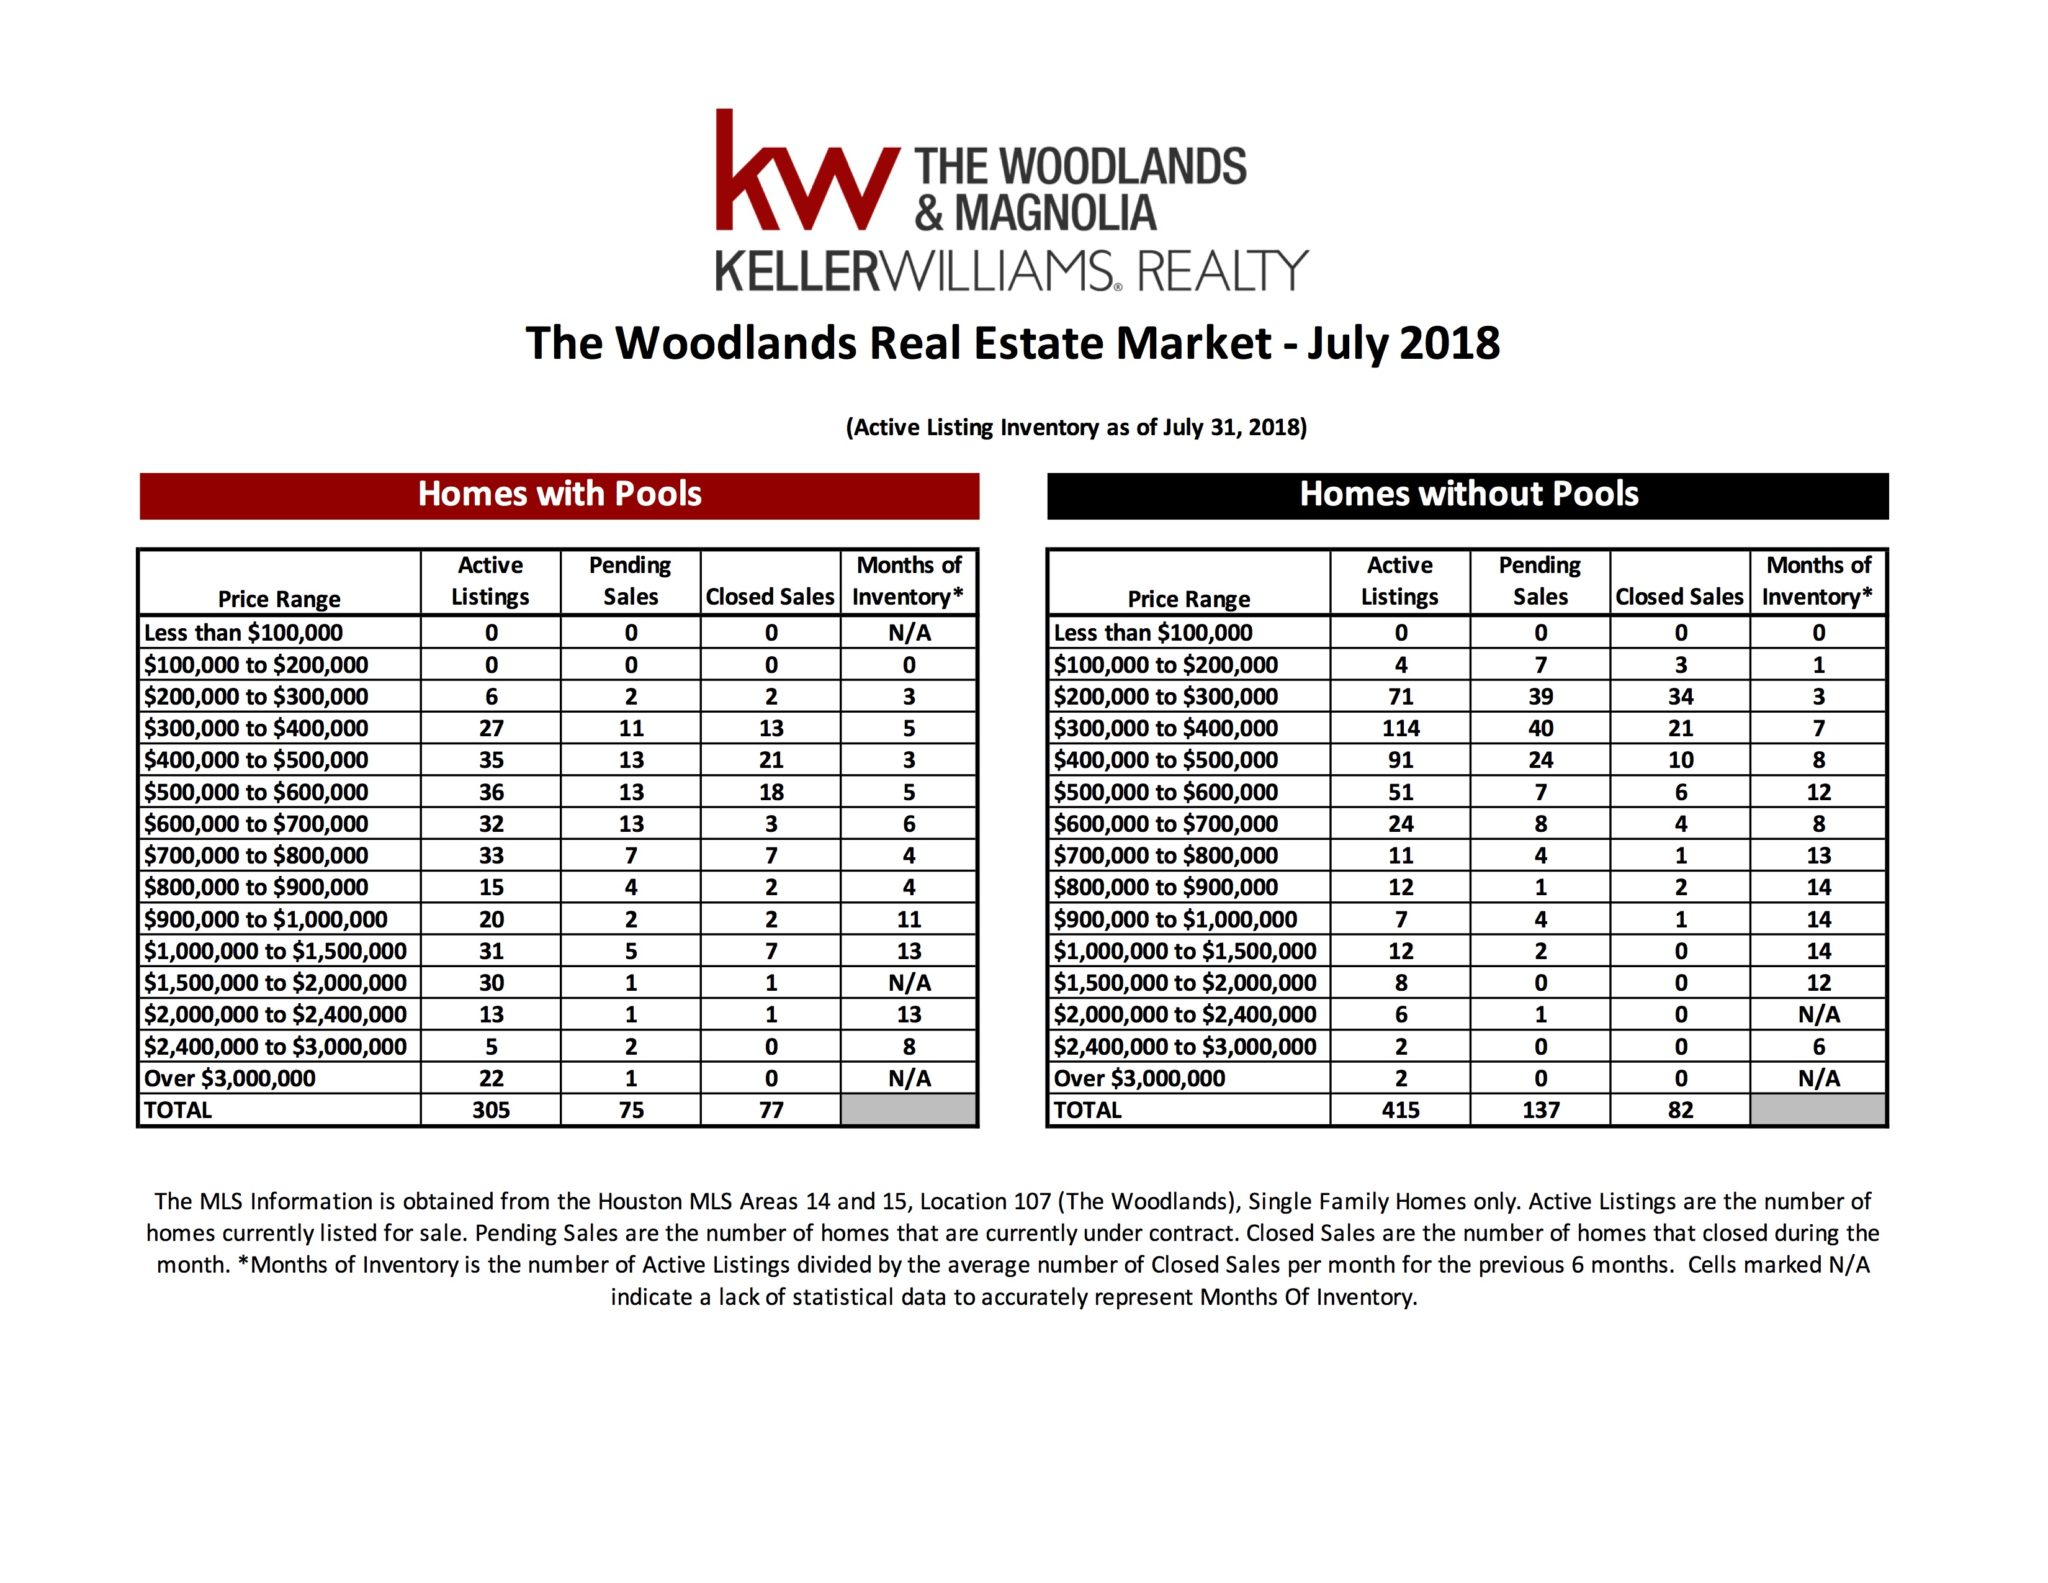 , July 2018 MarketWatch Report – The Woodlands, KW Woodlands